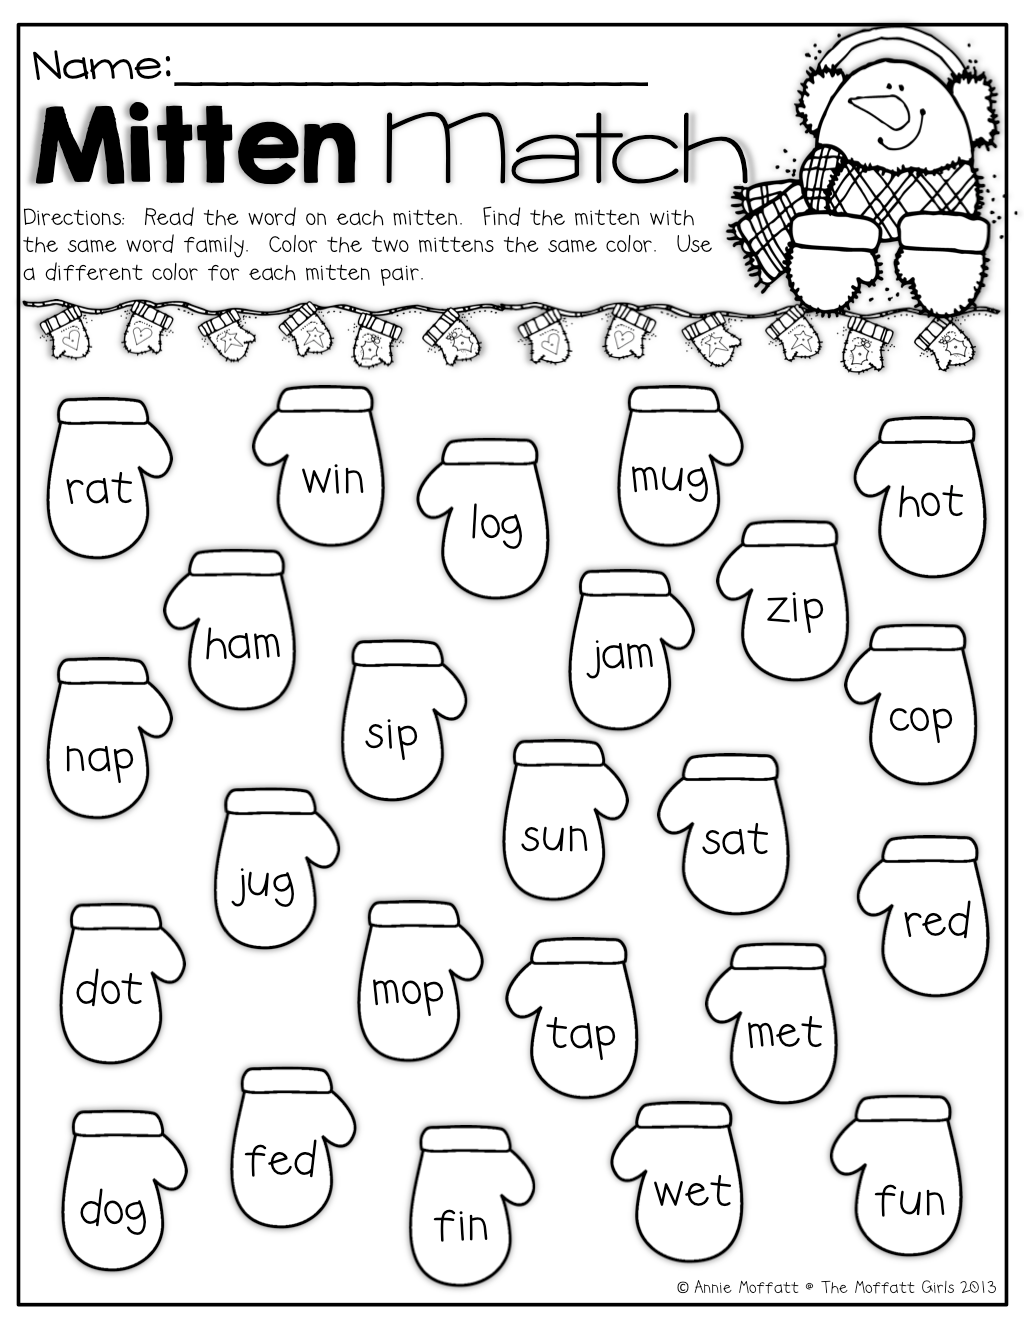 Mitten Match Color The Pair Of Mittens That Have The Same Word Family The Same Color